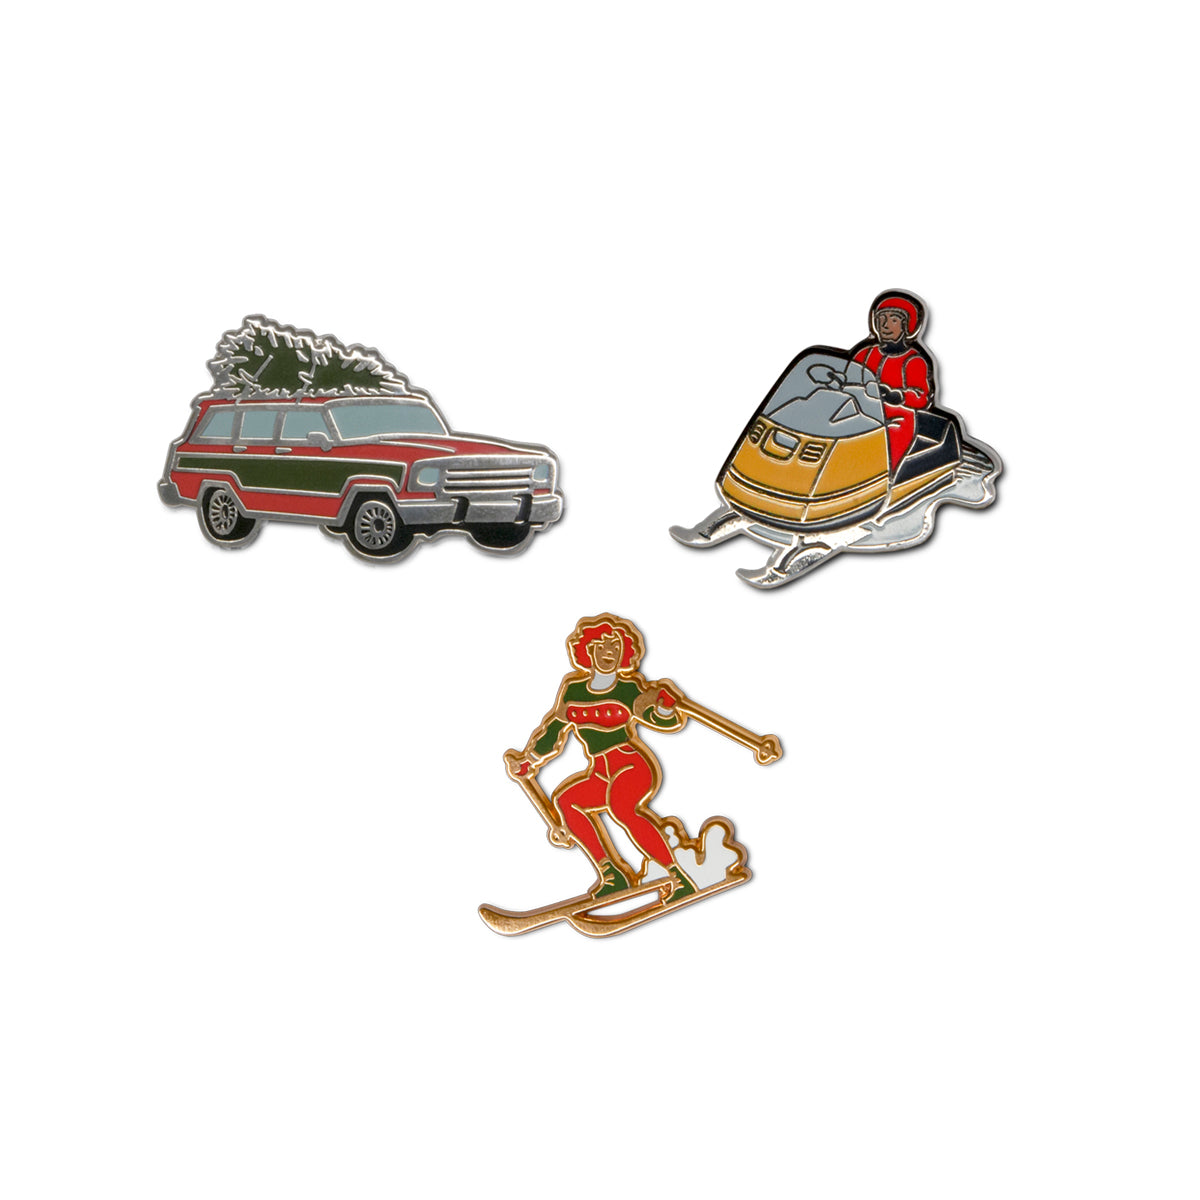 Set of Three Winter-Themed Enamel Pins